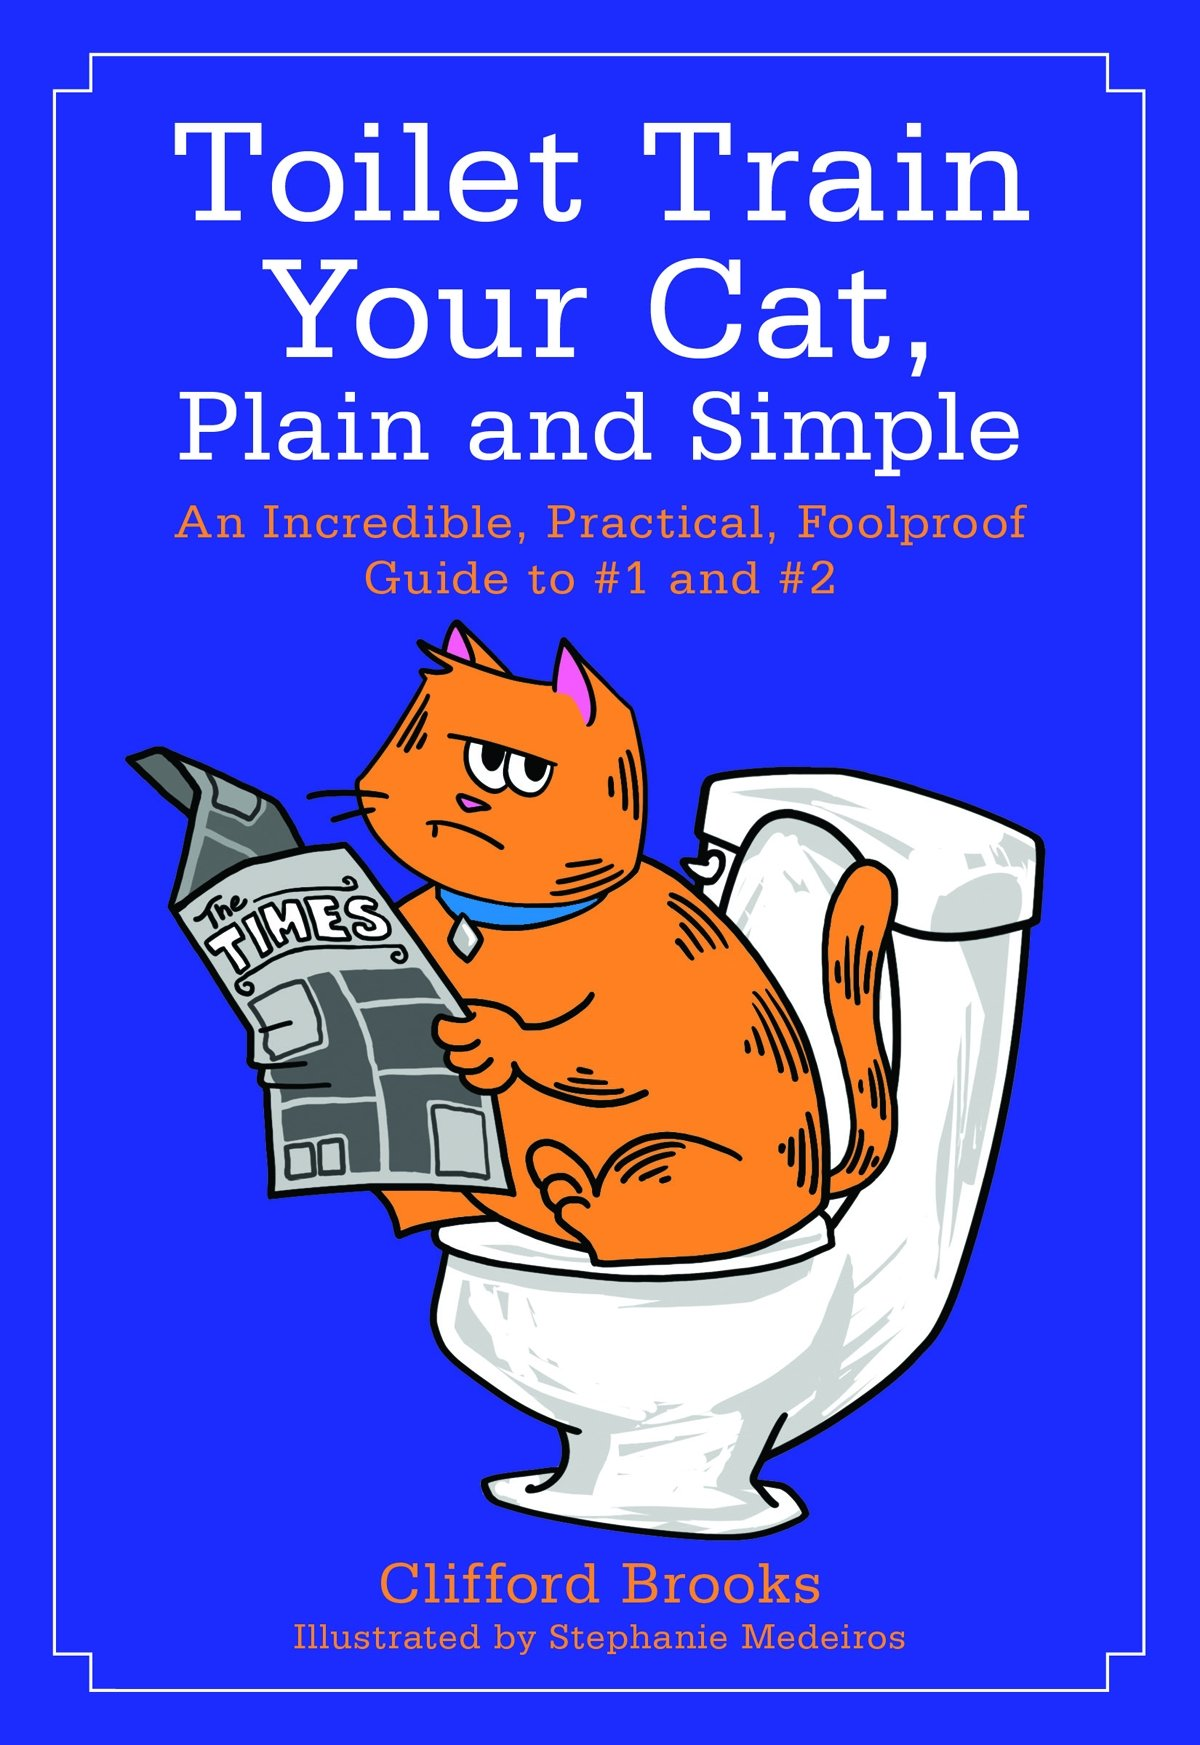 Toilet Train Your Cat, Plain and Simple: An Incredible, Practical, Foolproof Guide to #1 and #2 pdf